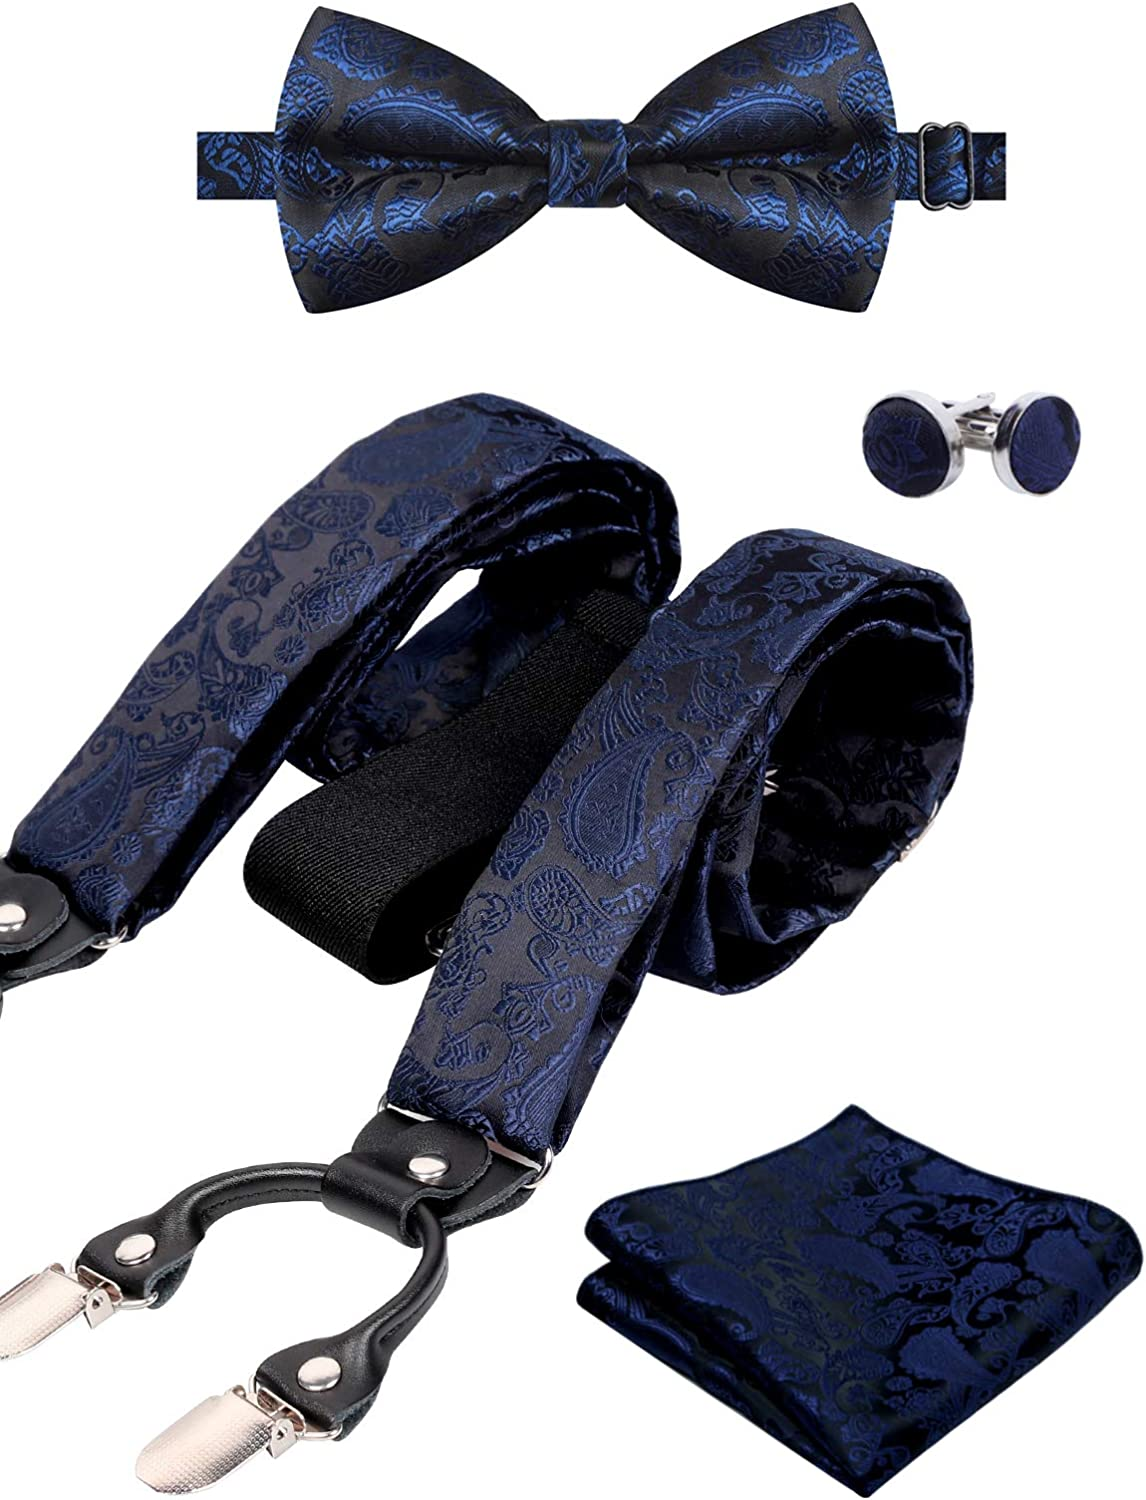 Hanky Alizeal Mens Paisley Braces and Bow Tie Cufflinks Set